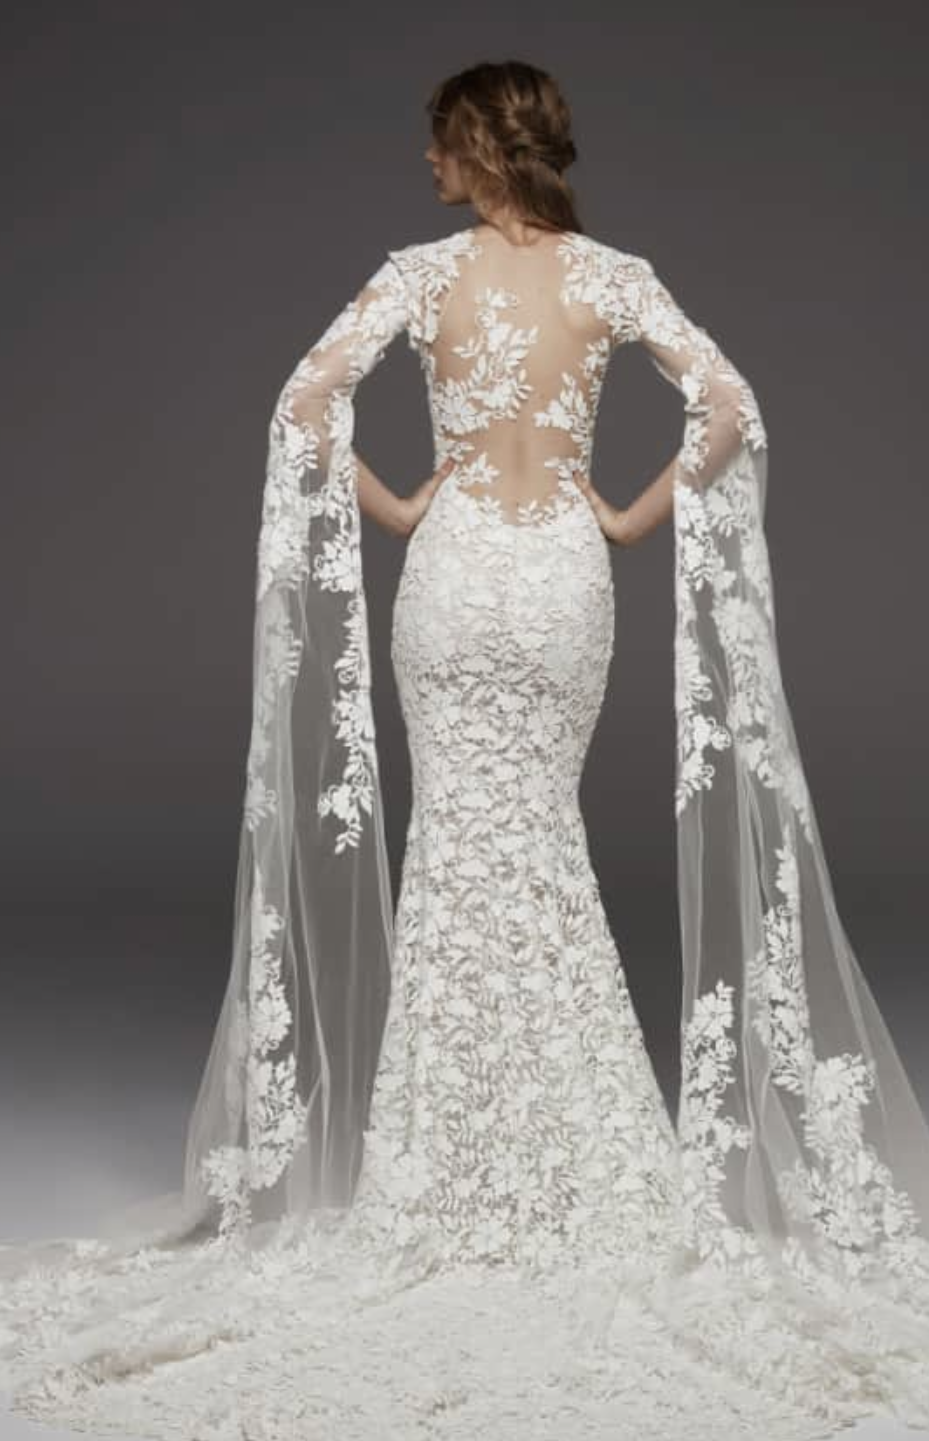 Himalaya Sleeveless Lace Gown by Altelier Pronovias Nordstrom.com